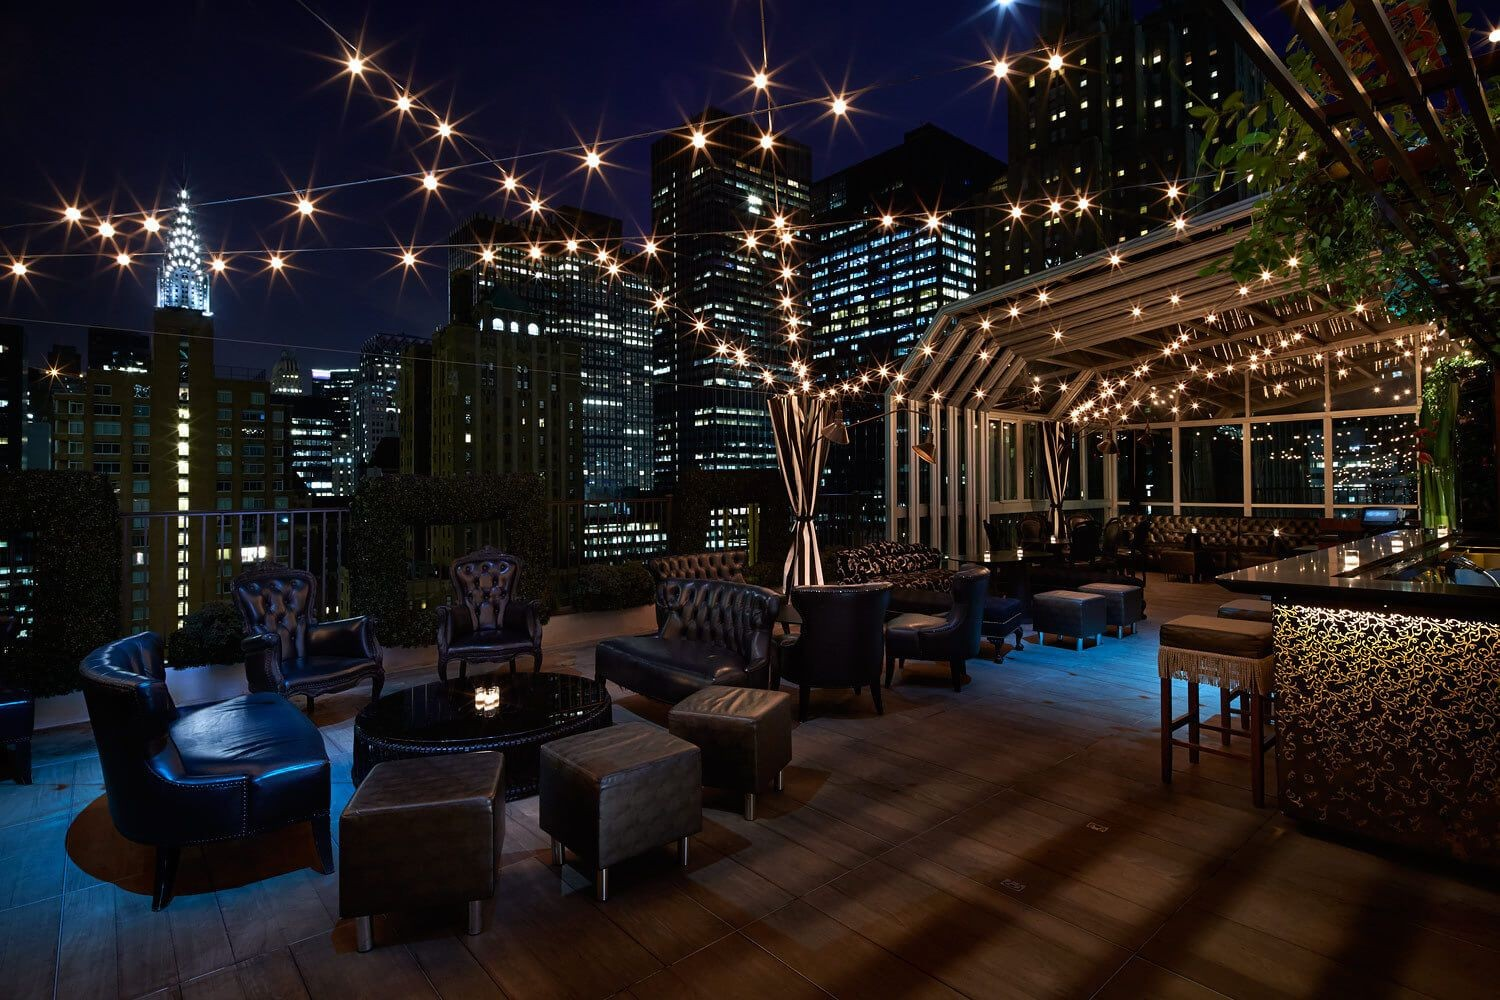 The Kimberly Hotel Rooftop